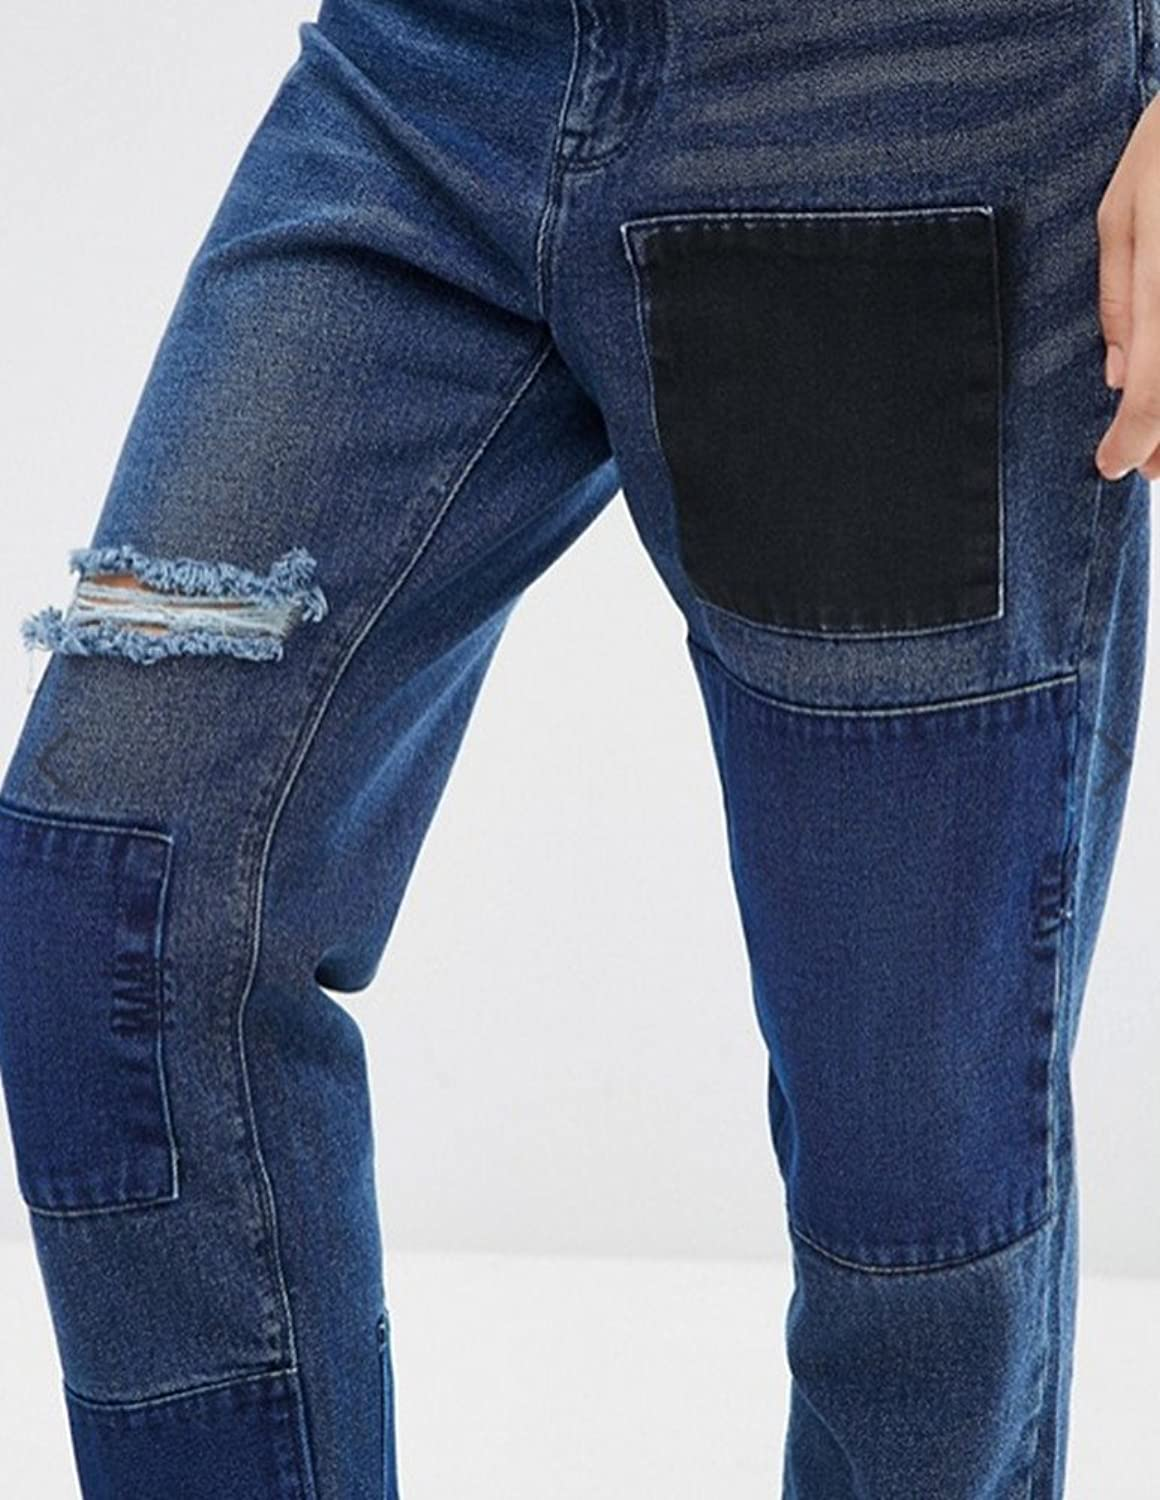 Women's Ripped Patches Distressed Loose Boyfriend Denim Jeans Dark Blue